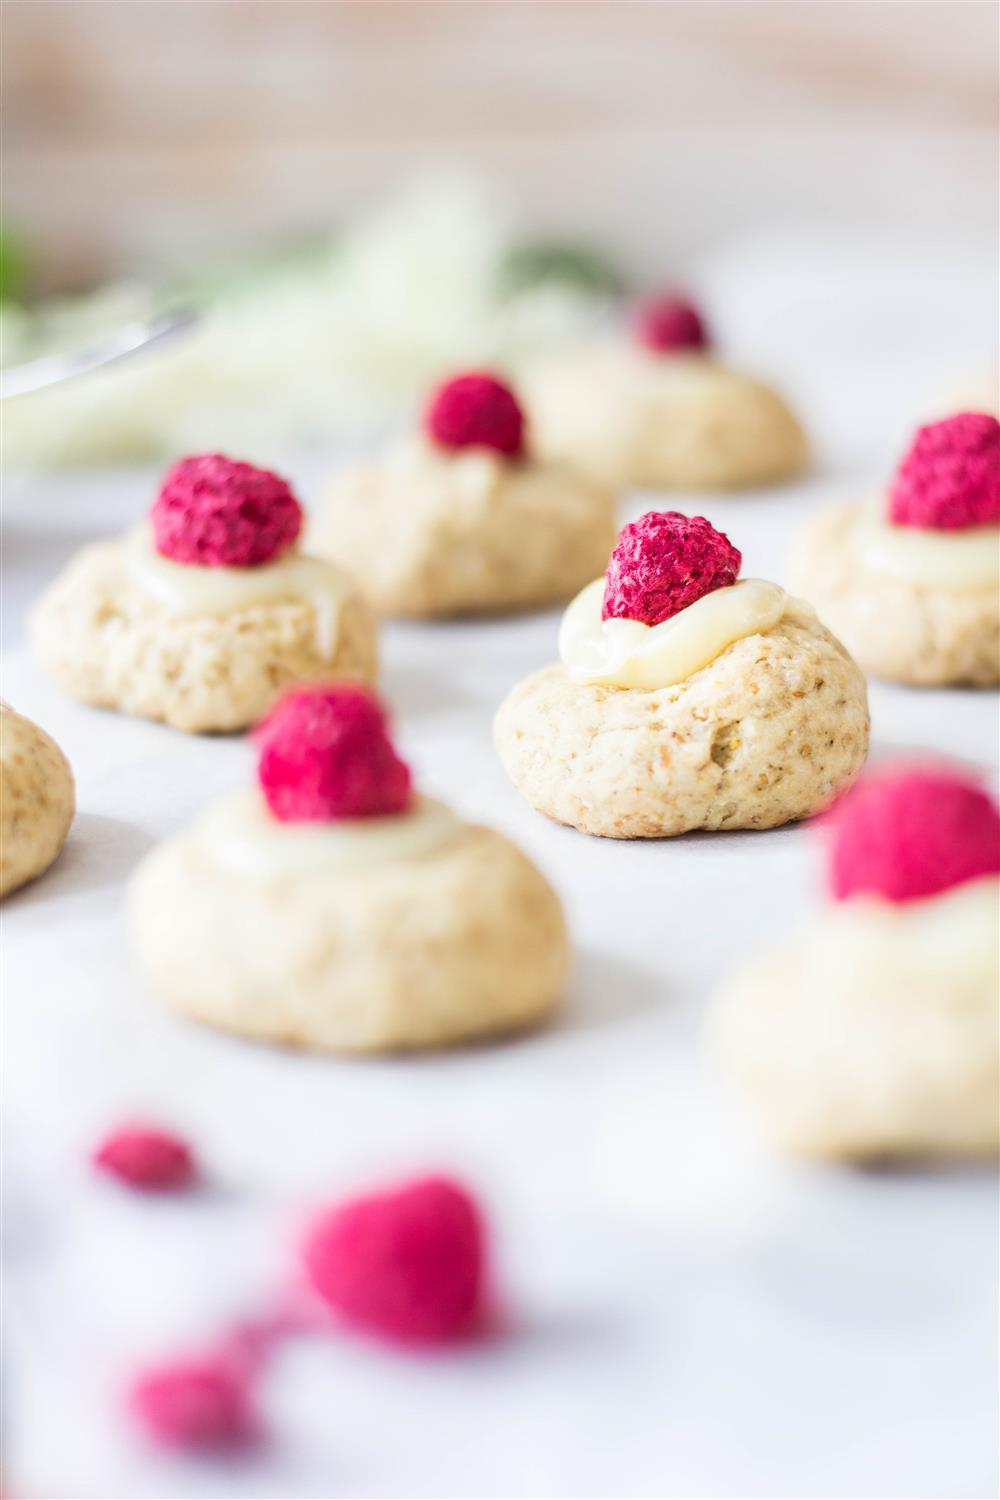 Use Your Noodles - Elderflower Cookie Bites With Raspberries